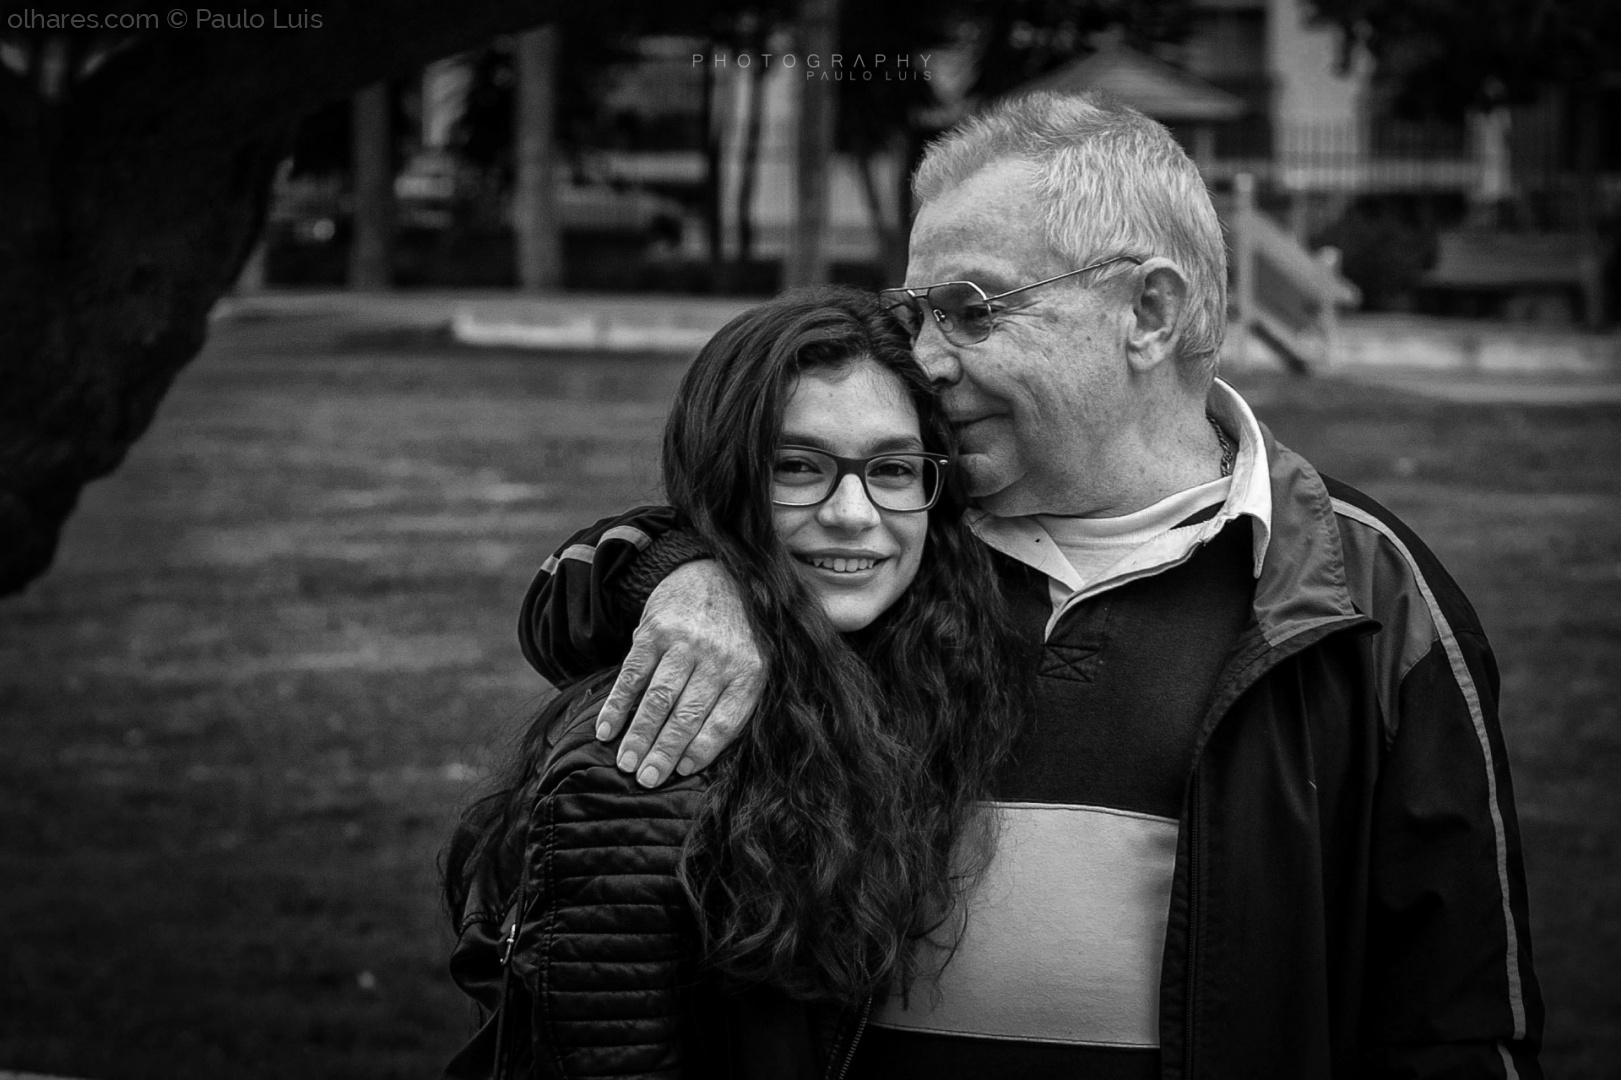 © Paulo Luis - The smell of the granddaughter...